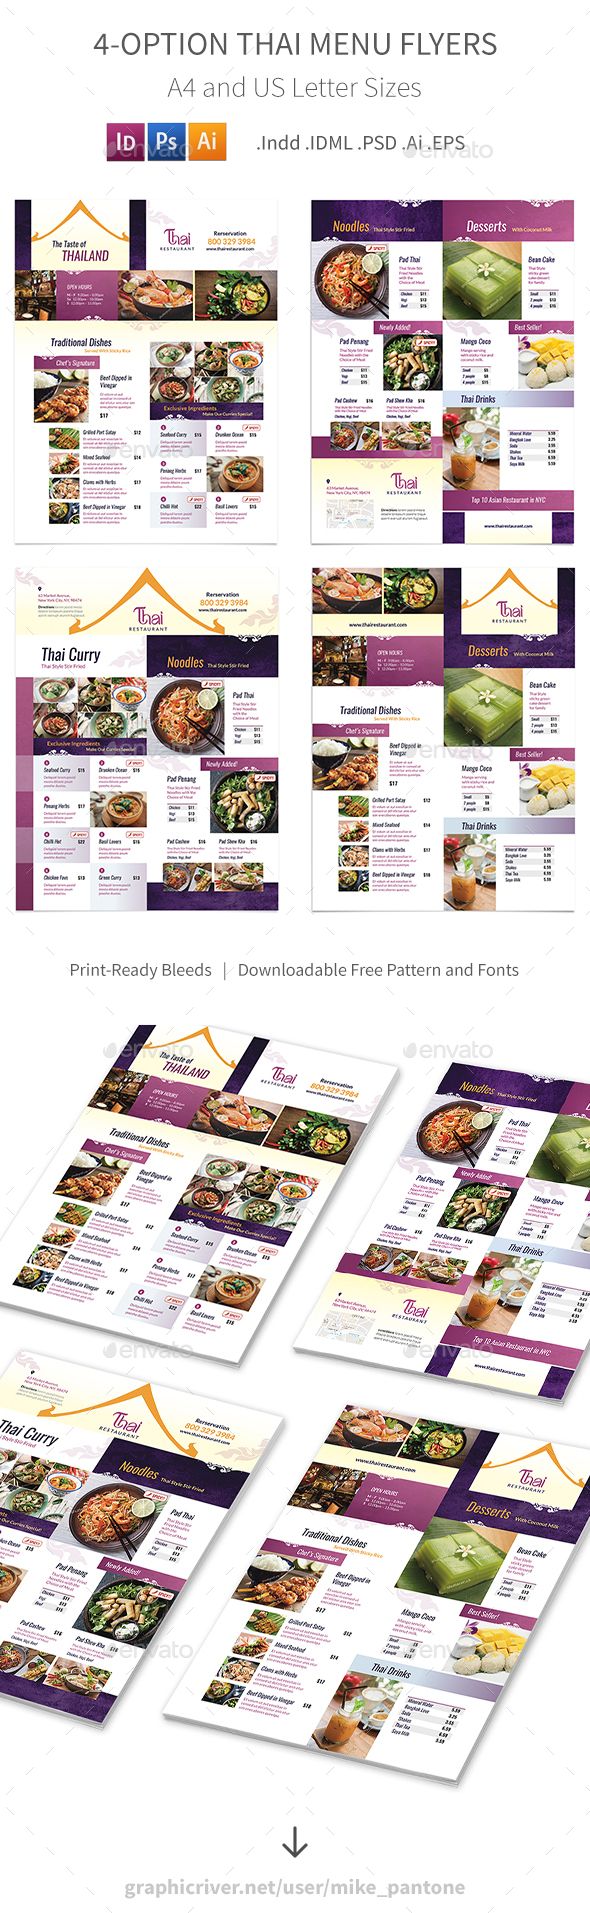 GraphicRiver Thai Restaurant Menu Flyers 4 4 Options 20339446